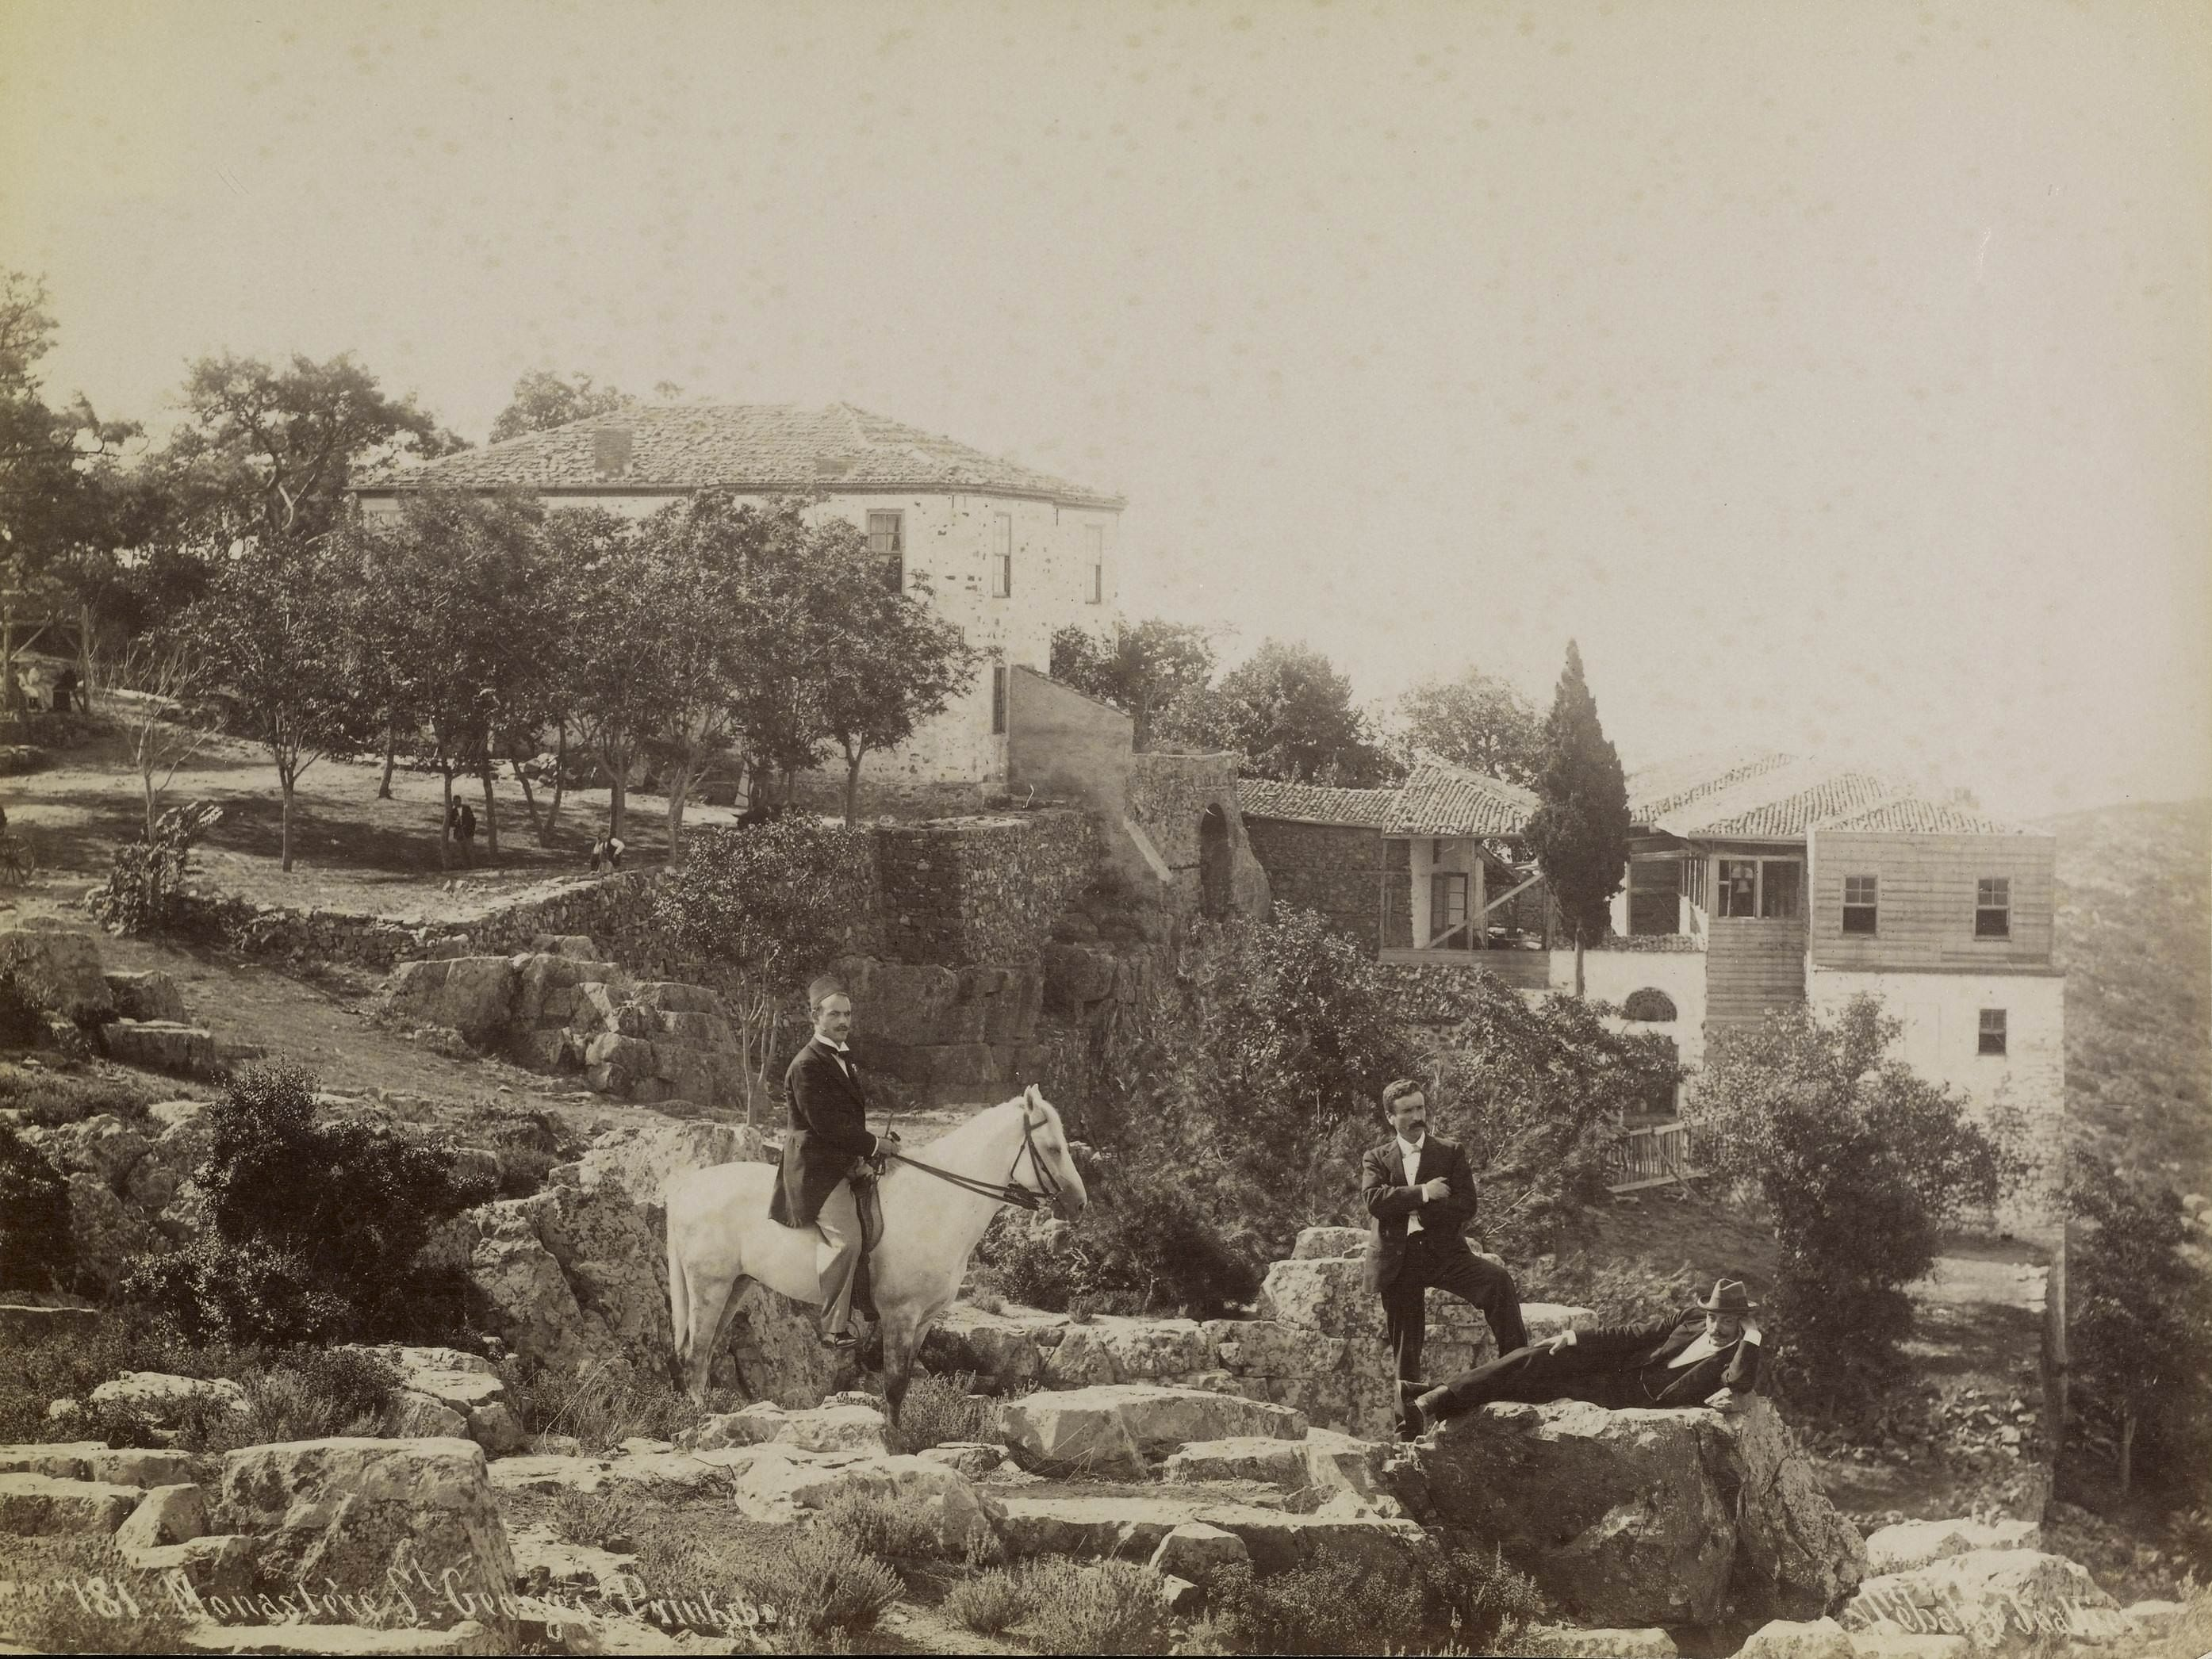 Pierre de Gigord Collection of Photographs of the Ottoman Empire and the Republic of Turkey, 1850-1958